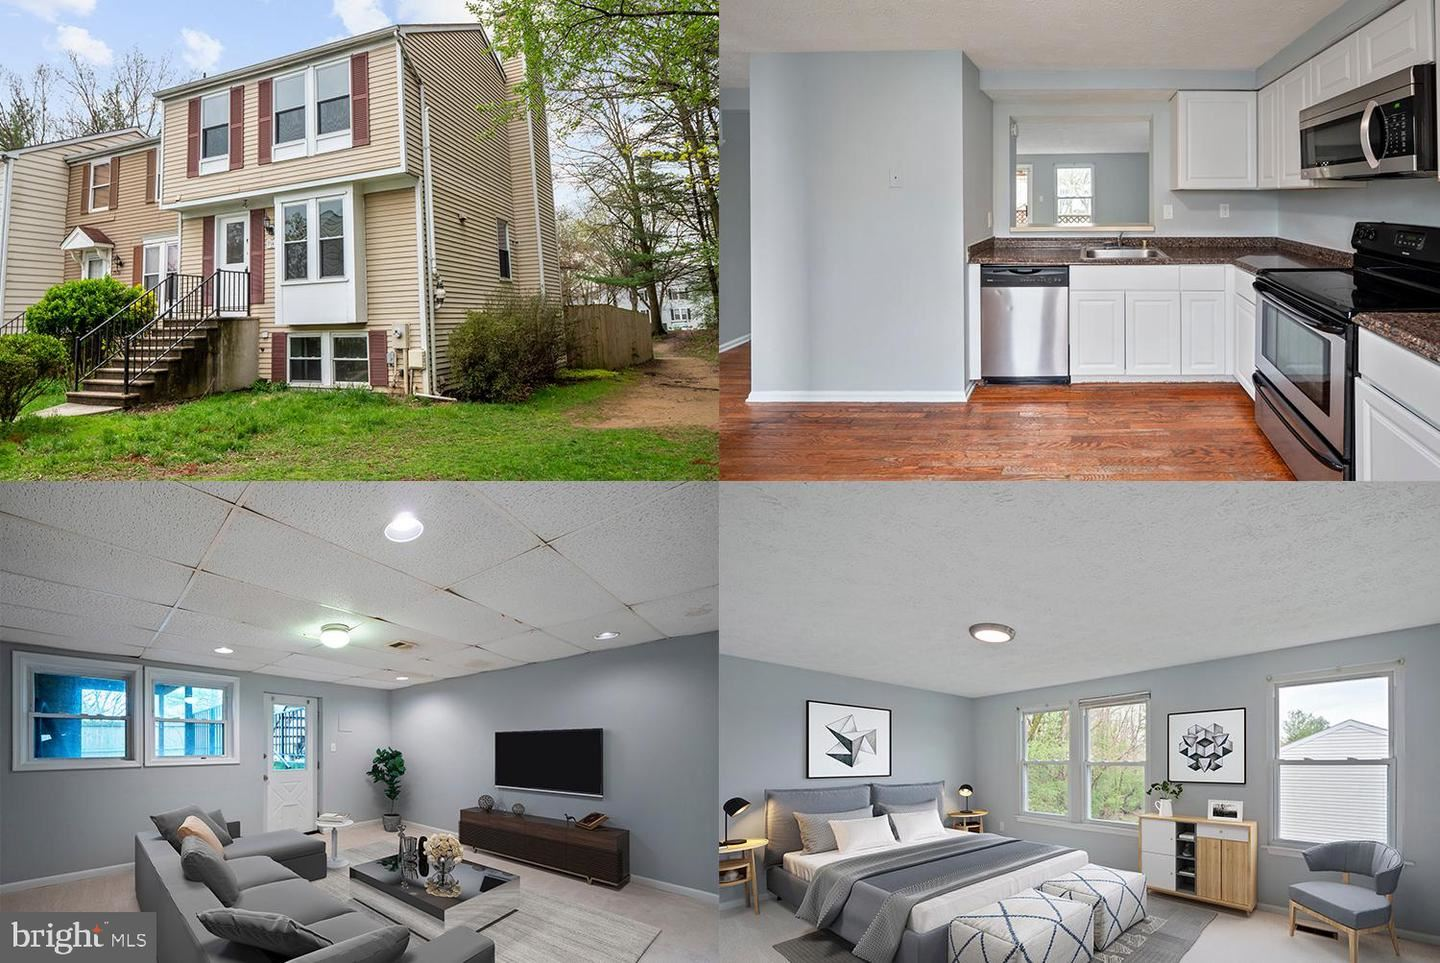 7541 SUMMER BLOSSOM LN, Columbia, MD 21046 - MLS#: MDHW292490